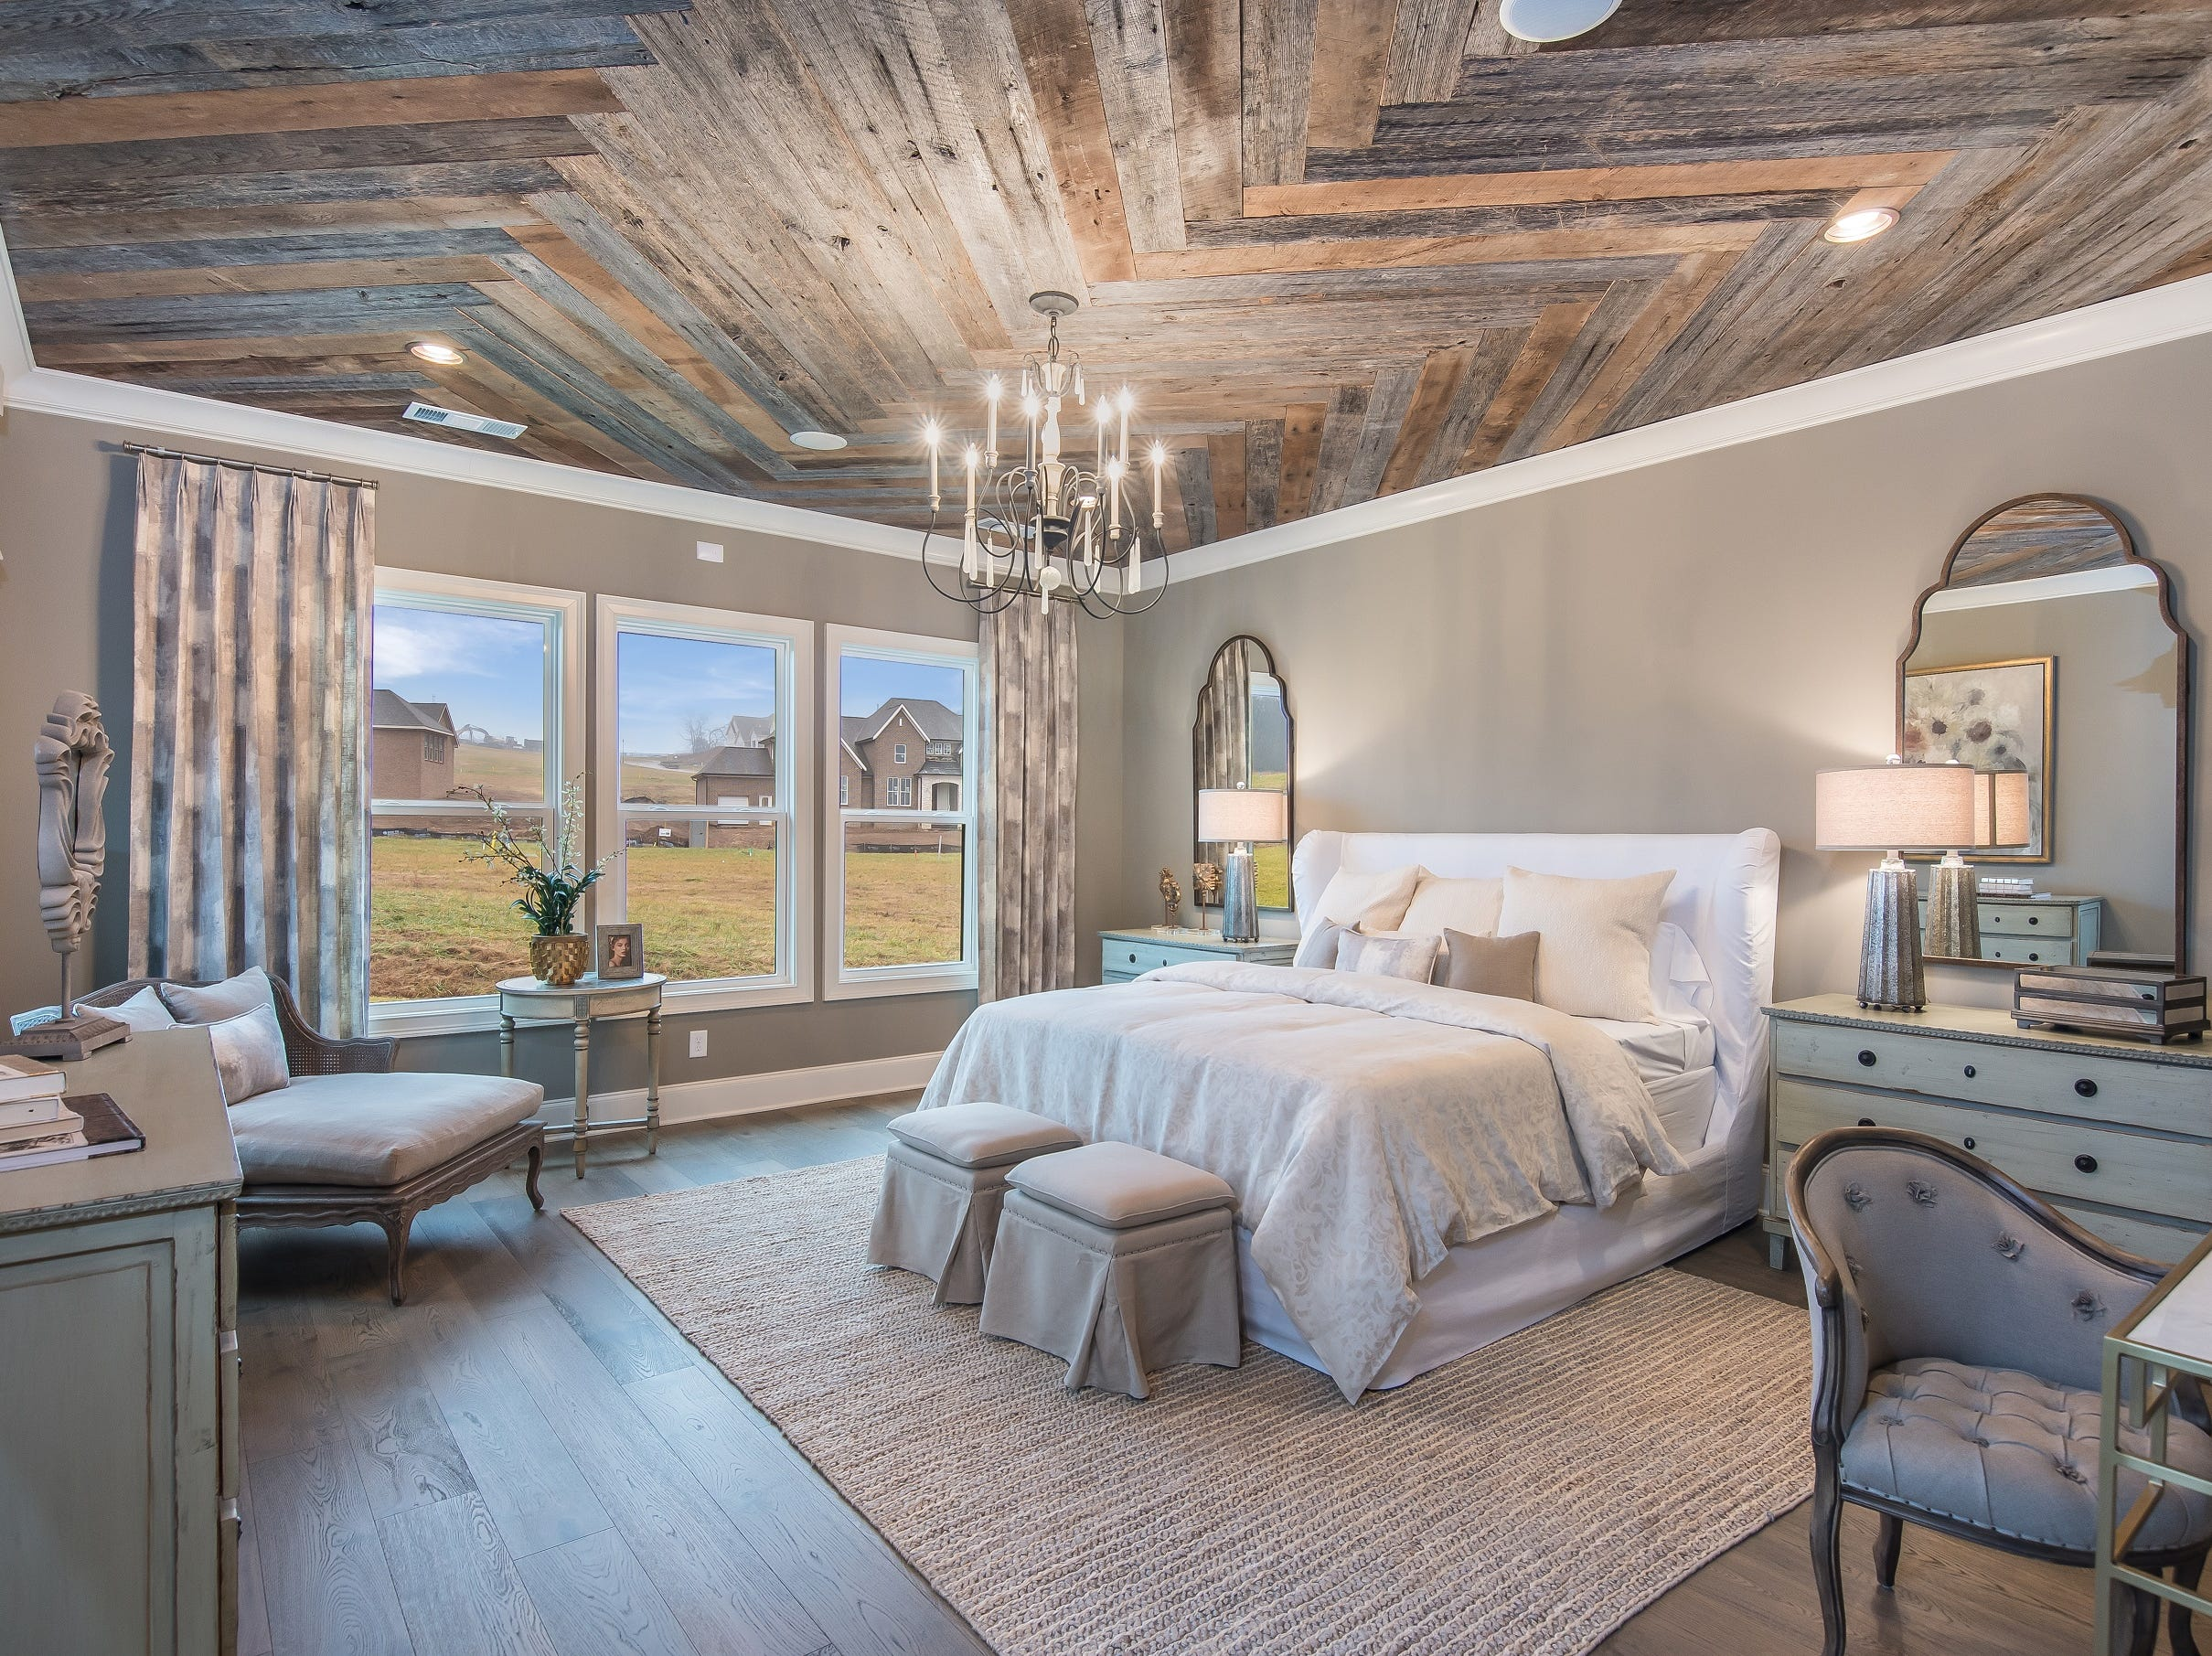 This barn wood ceiling in the home's master bedroom is another feature that would be considered an upgrade. In this model home, which is listed for sale, it comes with the house.